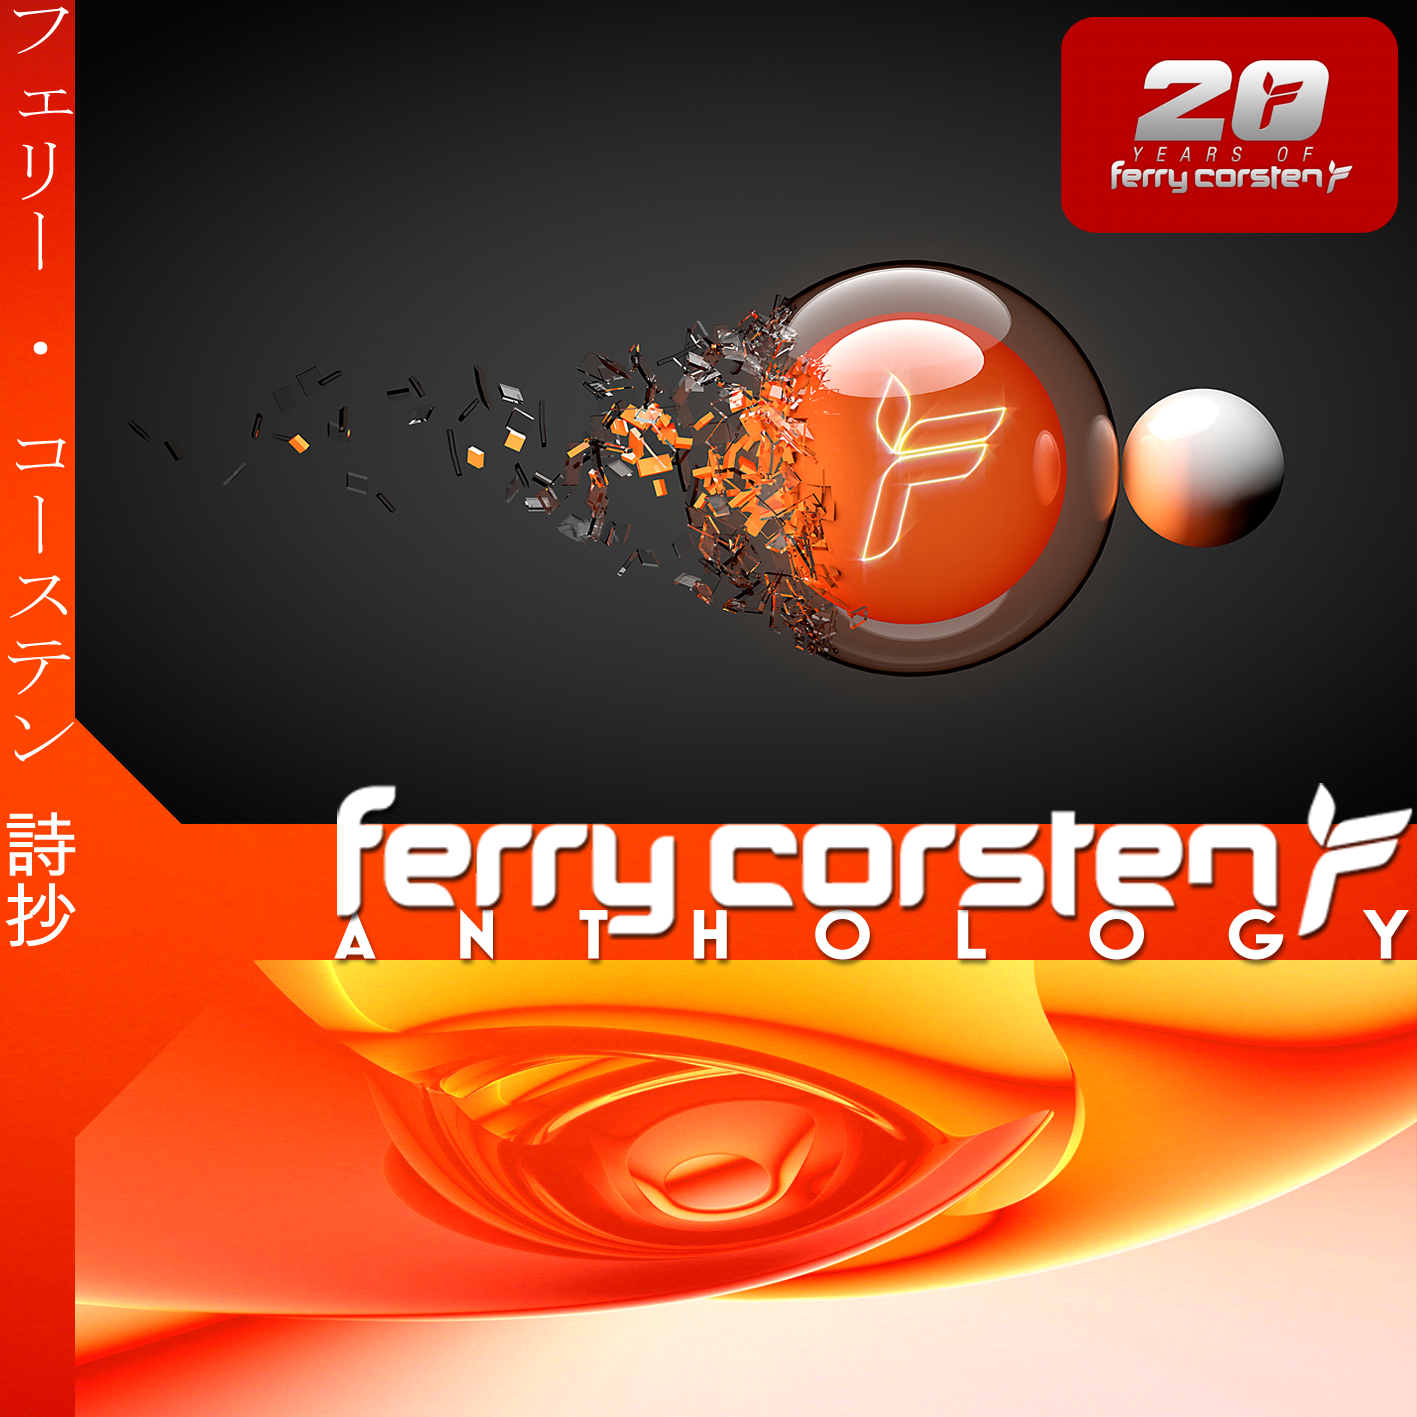 Kti flac archives va ferry corsten anthology flac lossless country ukraine label na catalogue na codec flac flac riptype tracks 799 quality lossless duration 3101020 size 3366 gb malvernweather Choice Image